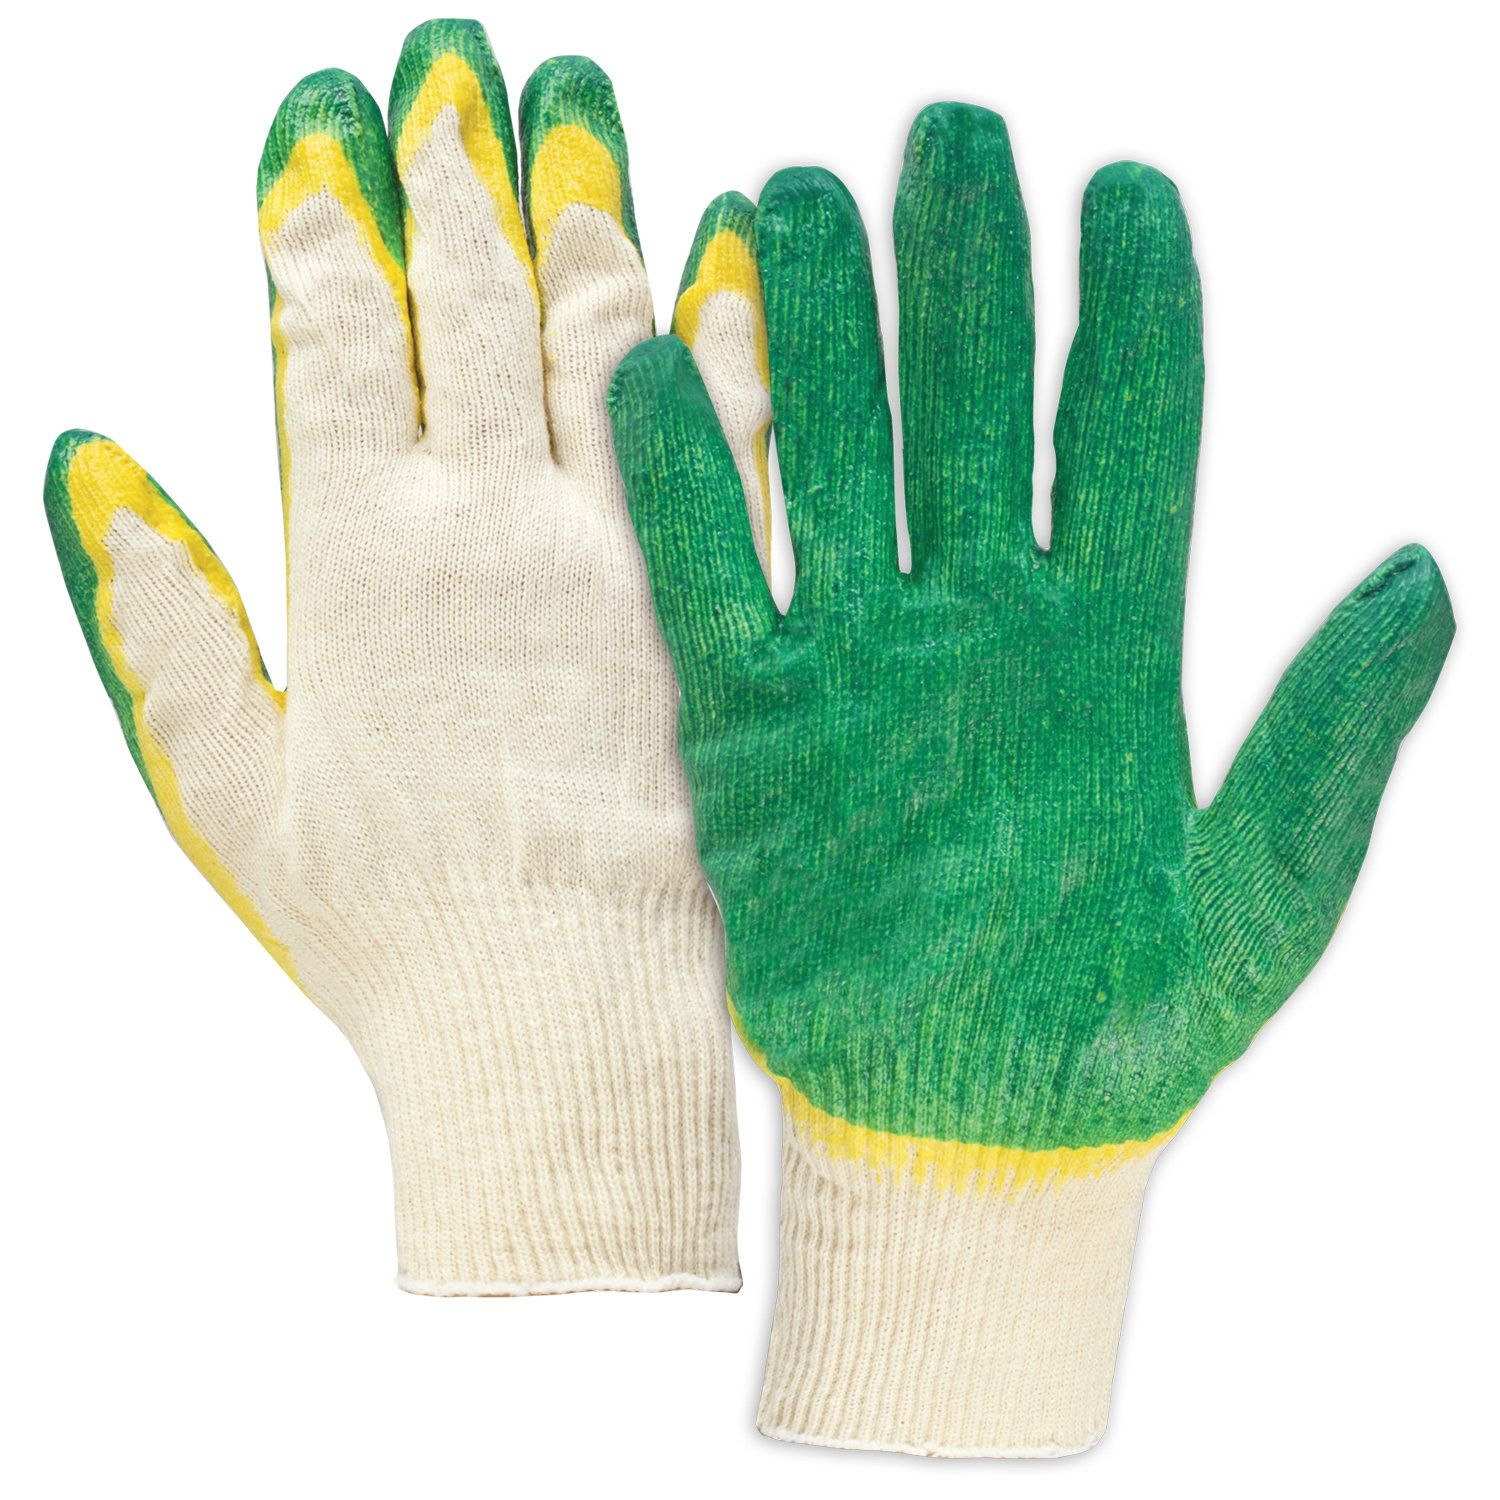 LIMA / LUXURY cotton gloves, SET 5 PAIRS, 13 class, 40-42 g, 100 tex, DOUBLE latex coating